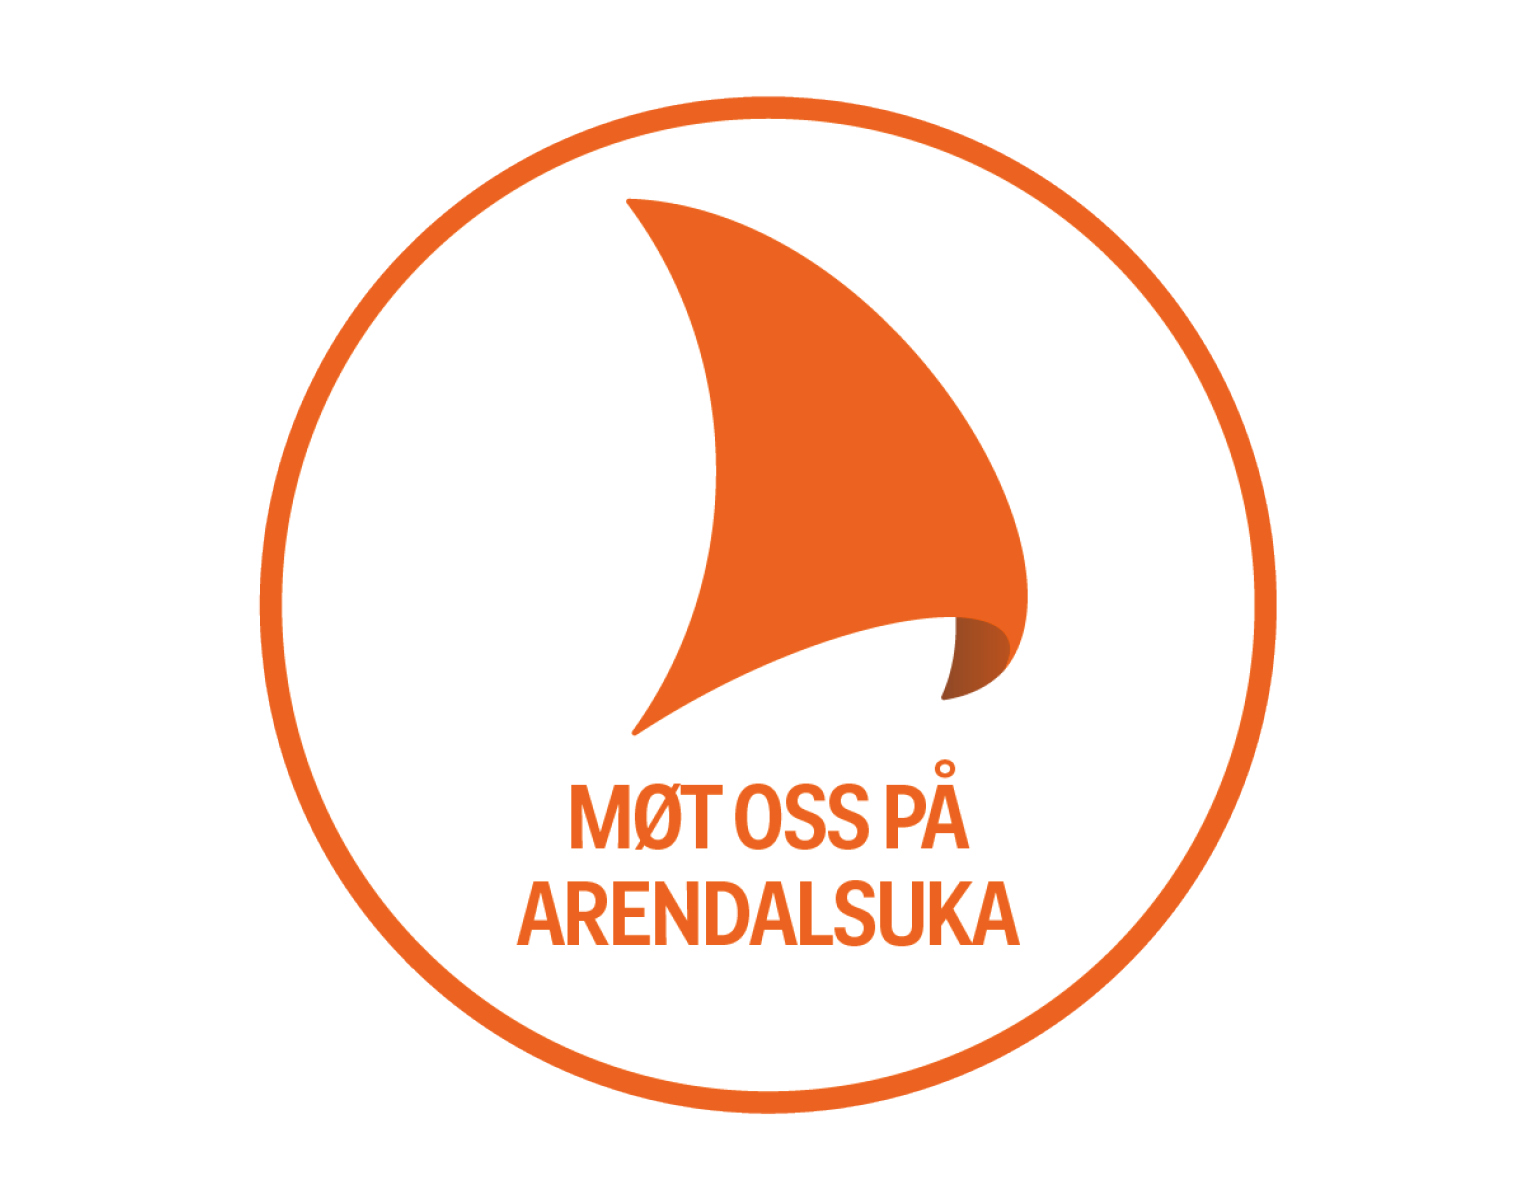 Vest-Agder-museet - Program for Arendalsuka 15.08 til 18.08